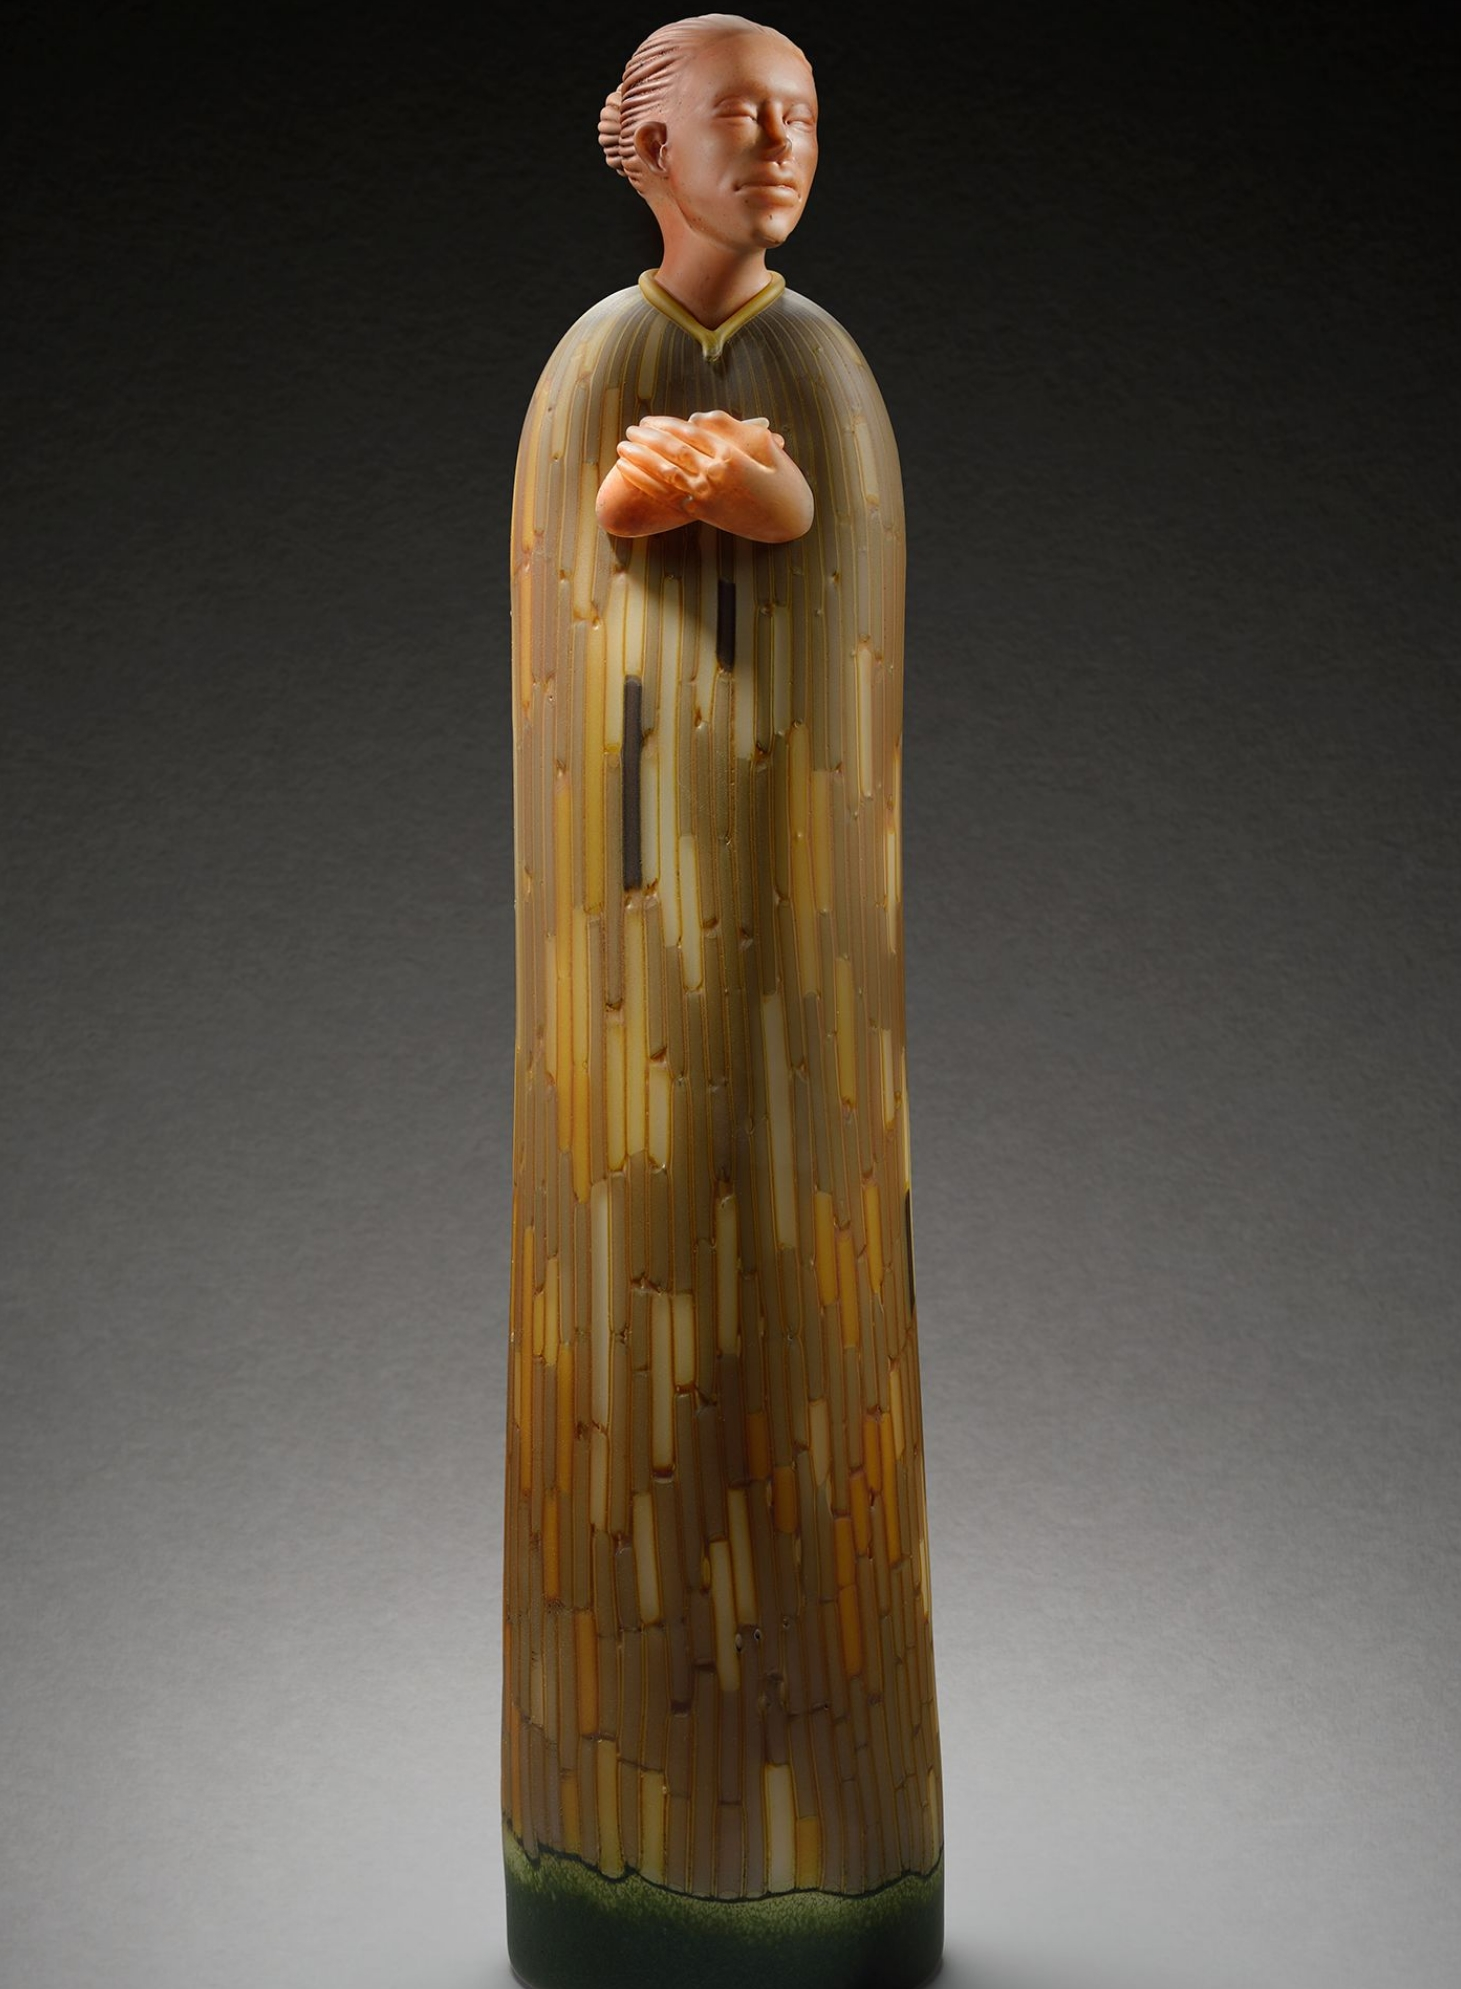 Blown and sculpted figurative glass sculpture by artist Ross Richmond